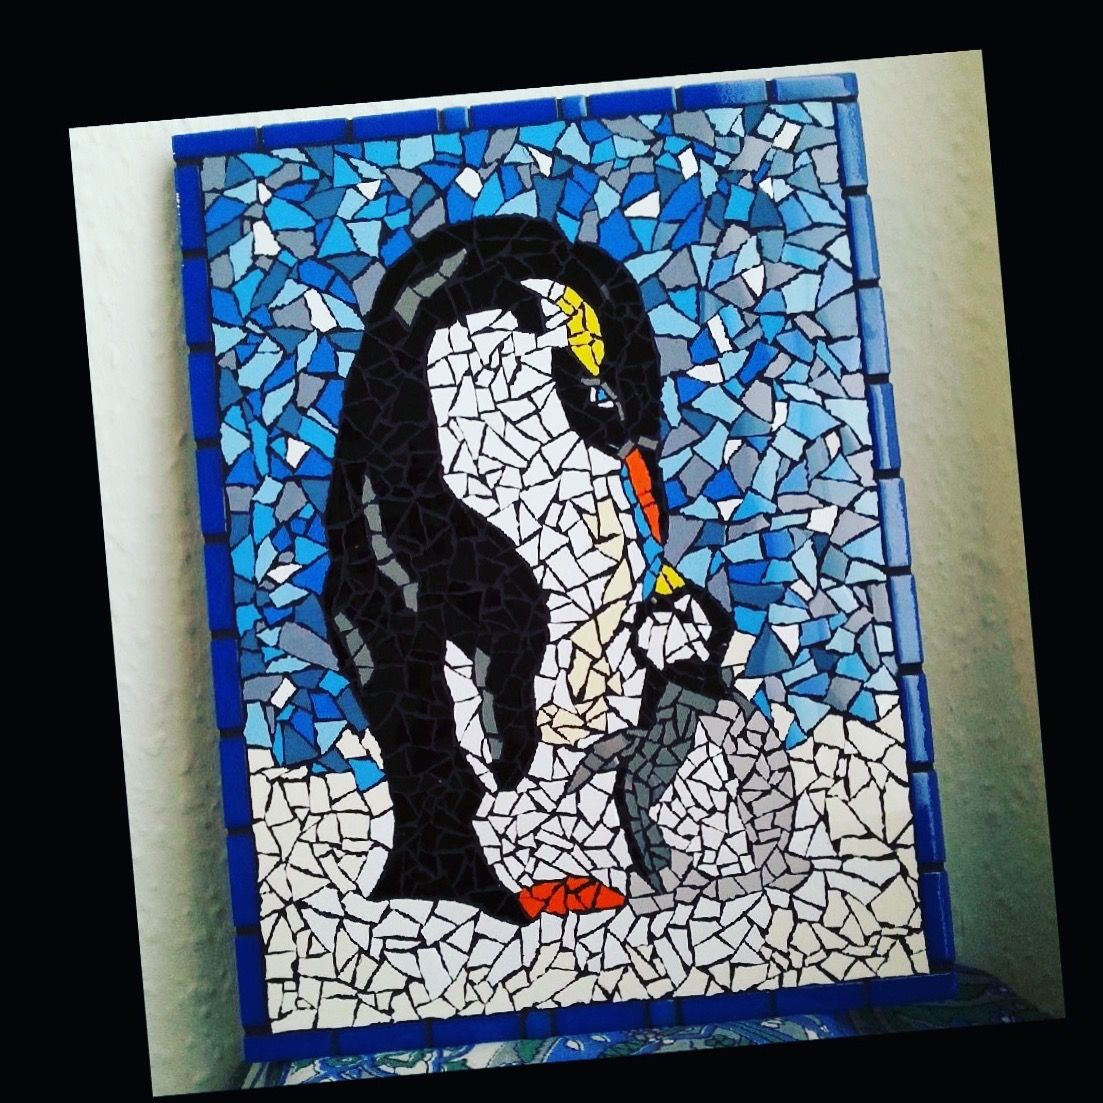 My mother and baby penguin. A mosaic created using ceramic tiles